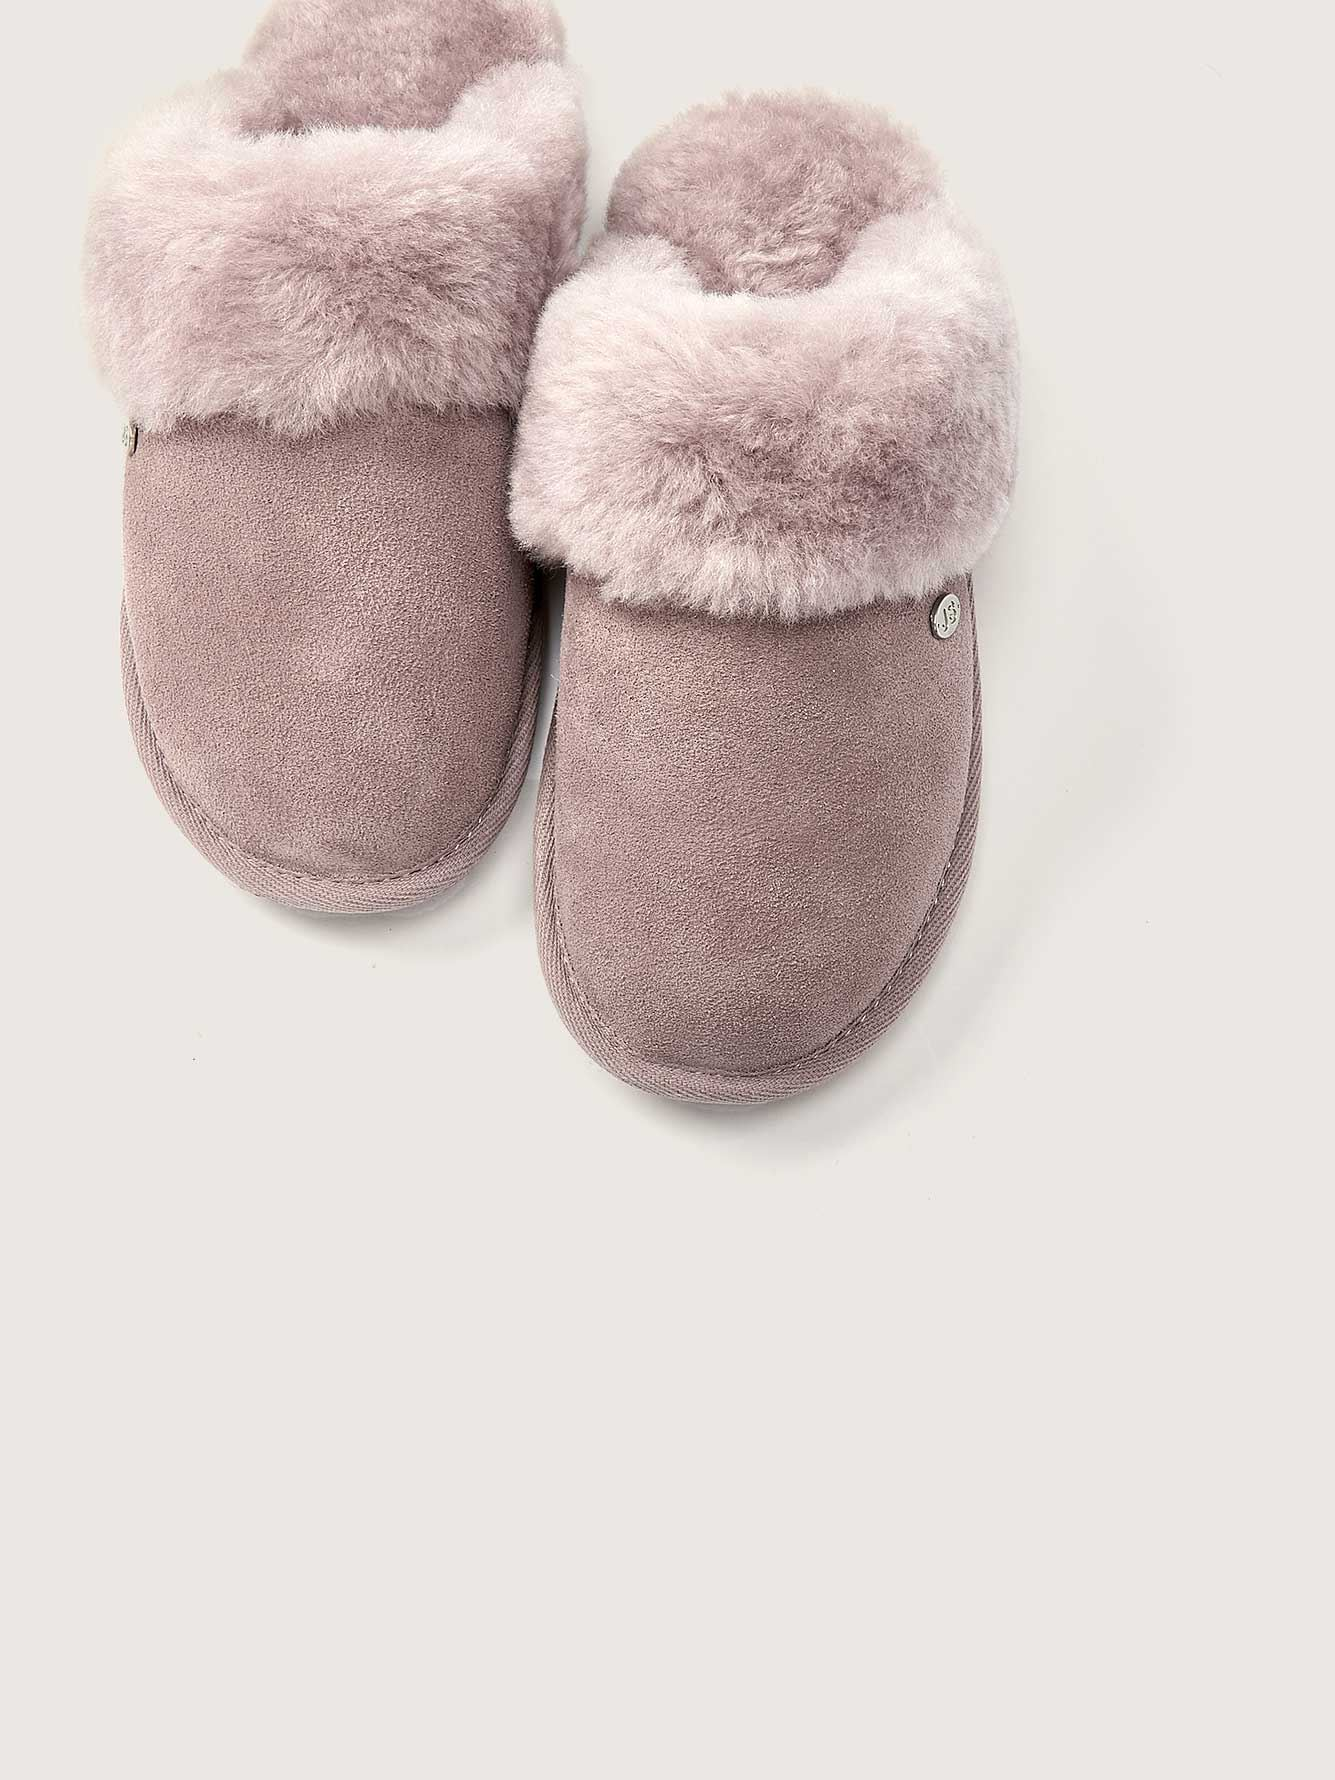 Duchess Suede Slippers - Just Sheepskin